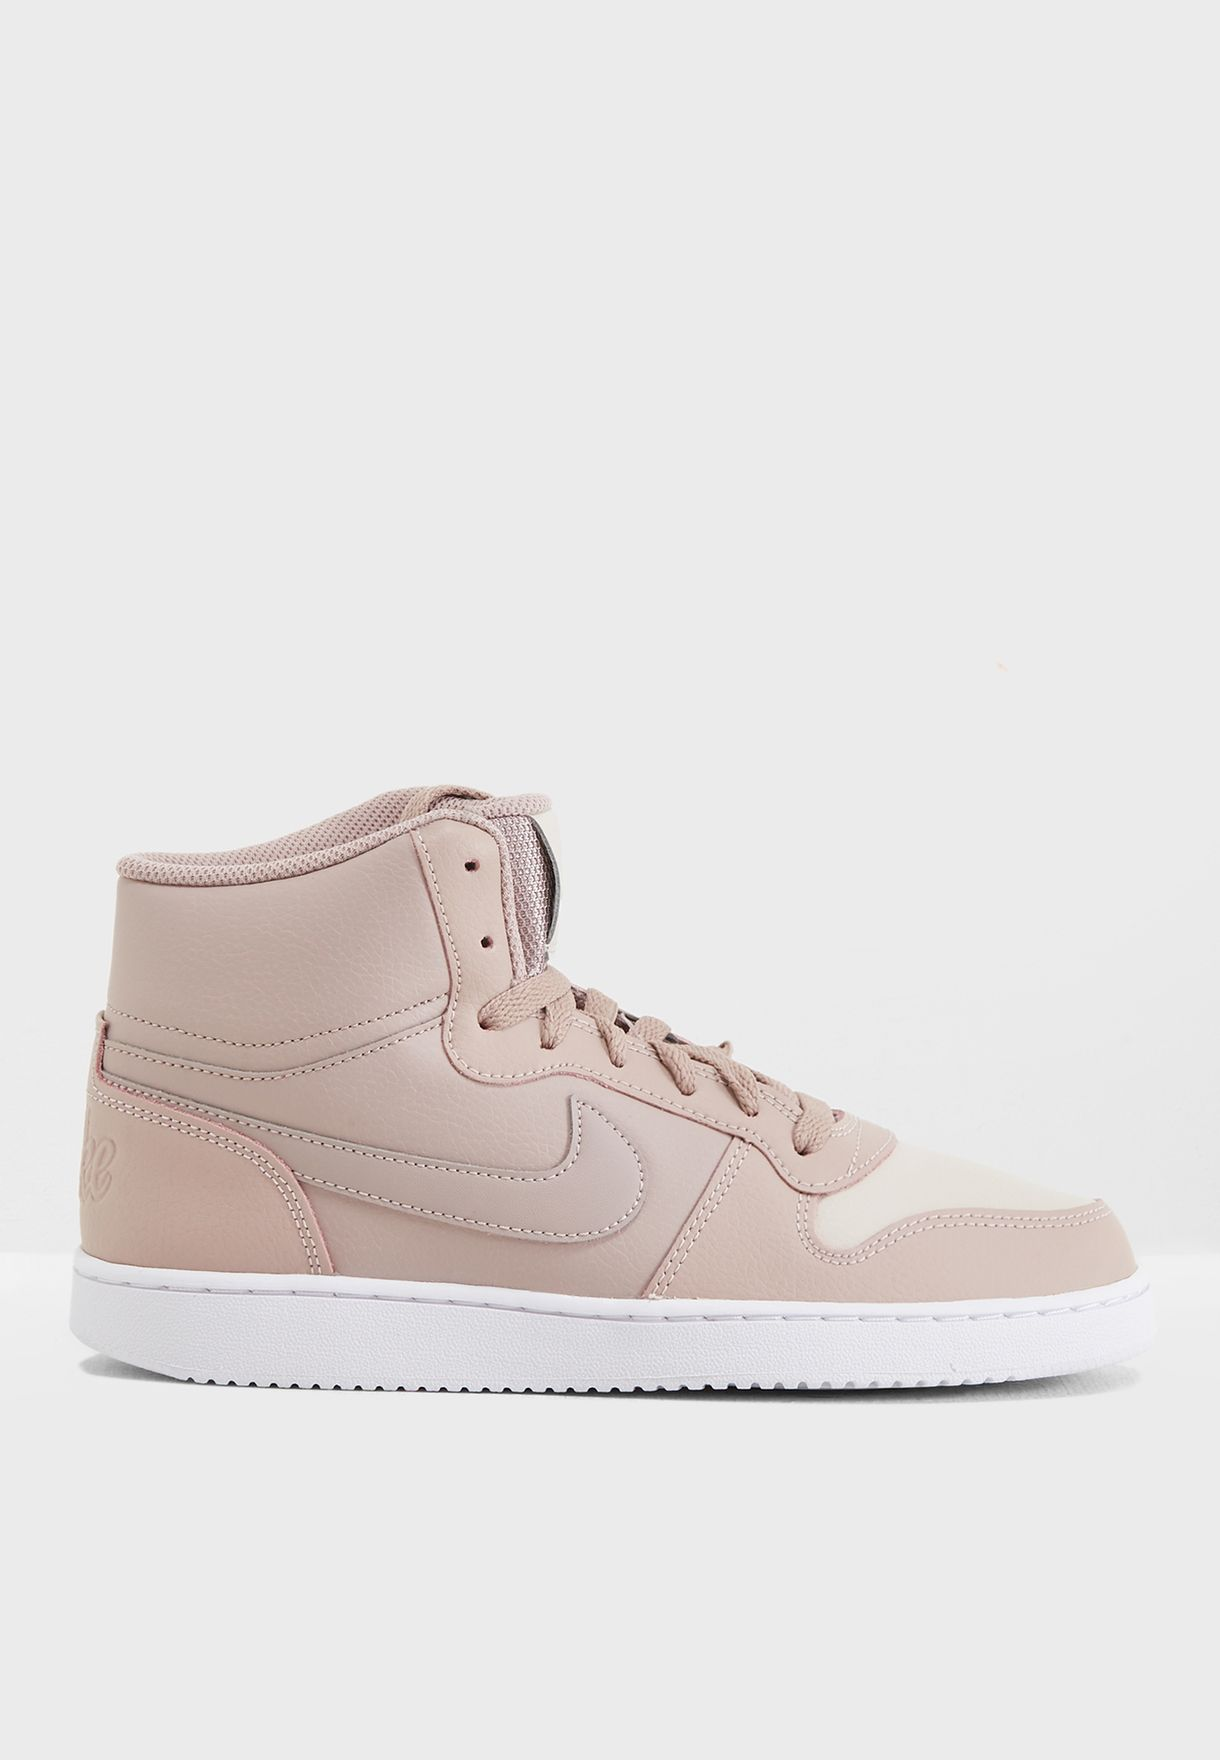 buy popular 11f85 2f532 Shop Nike browns Ebernon Mid AQ1778-200 for Women in Saudi ...